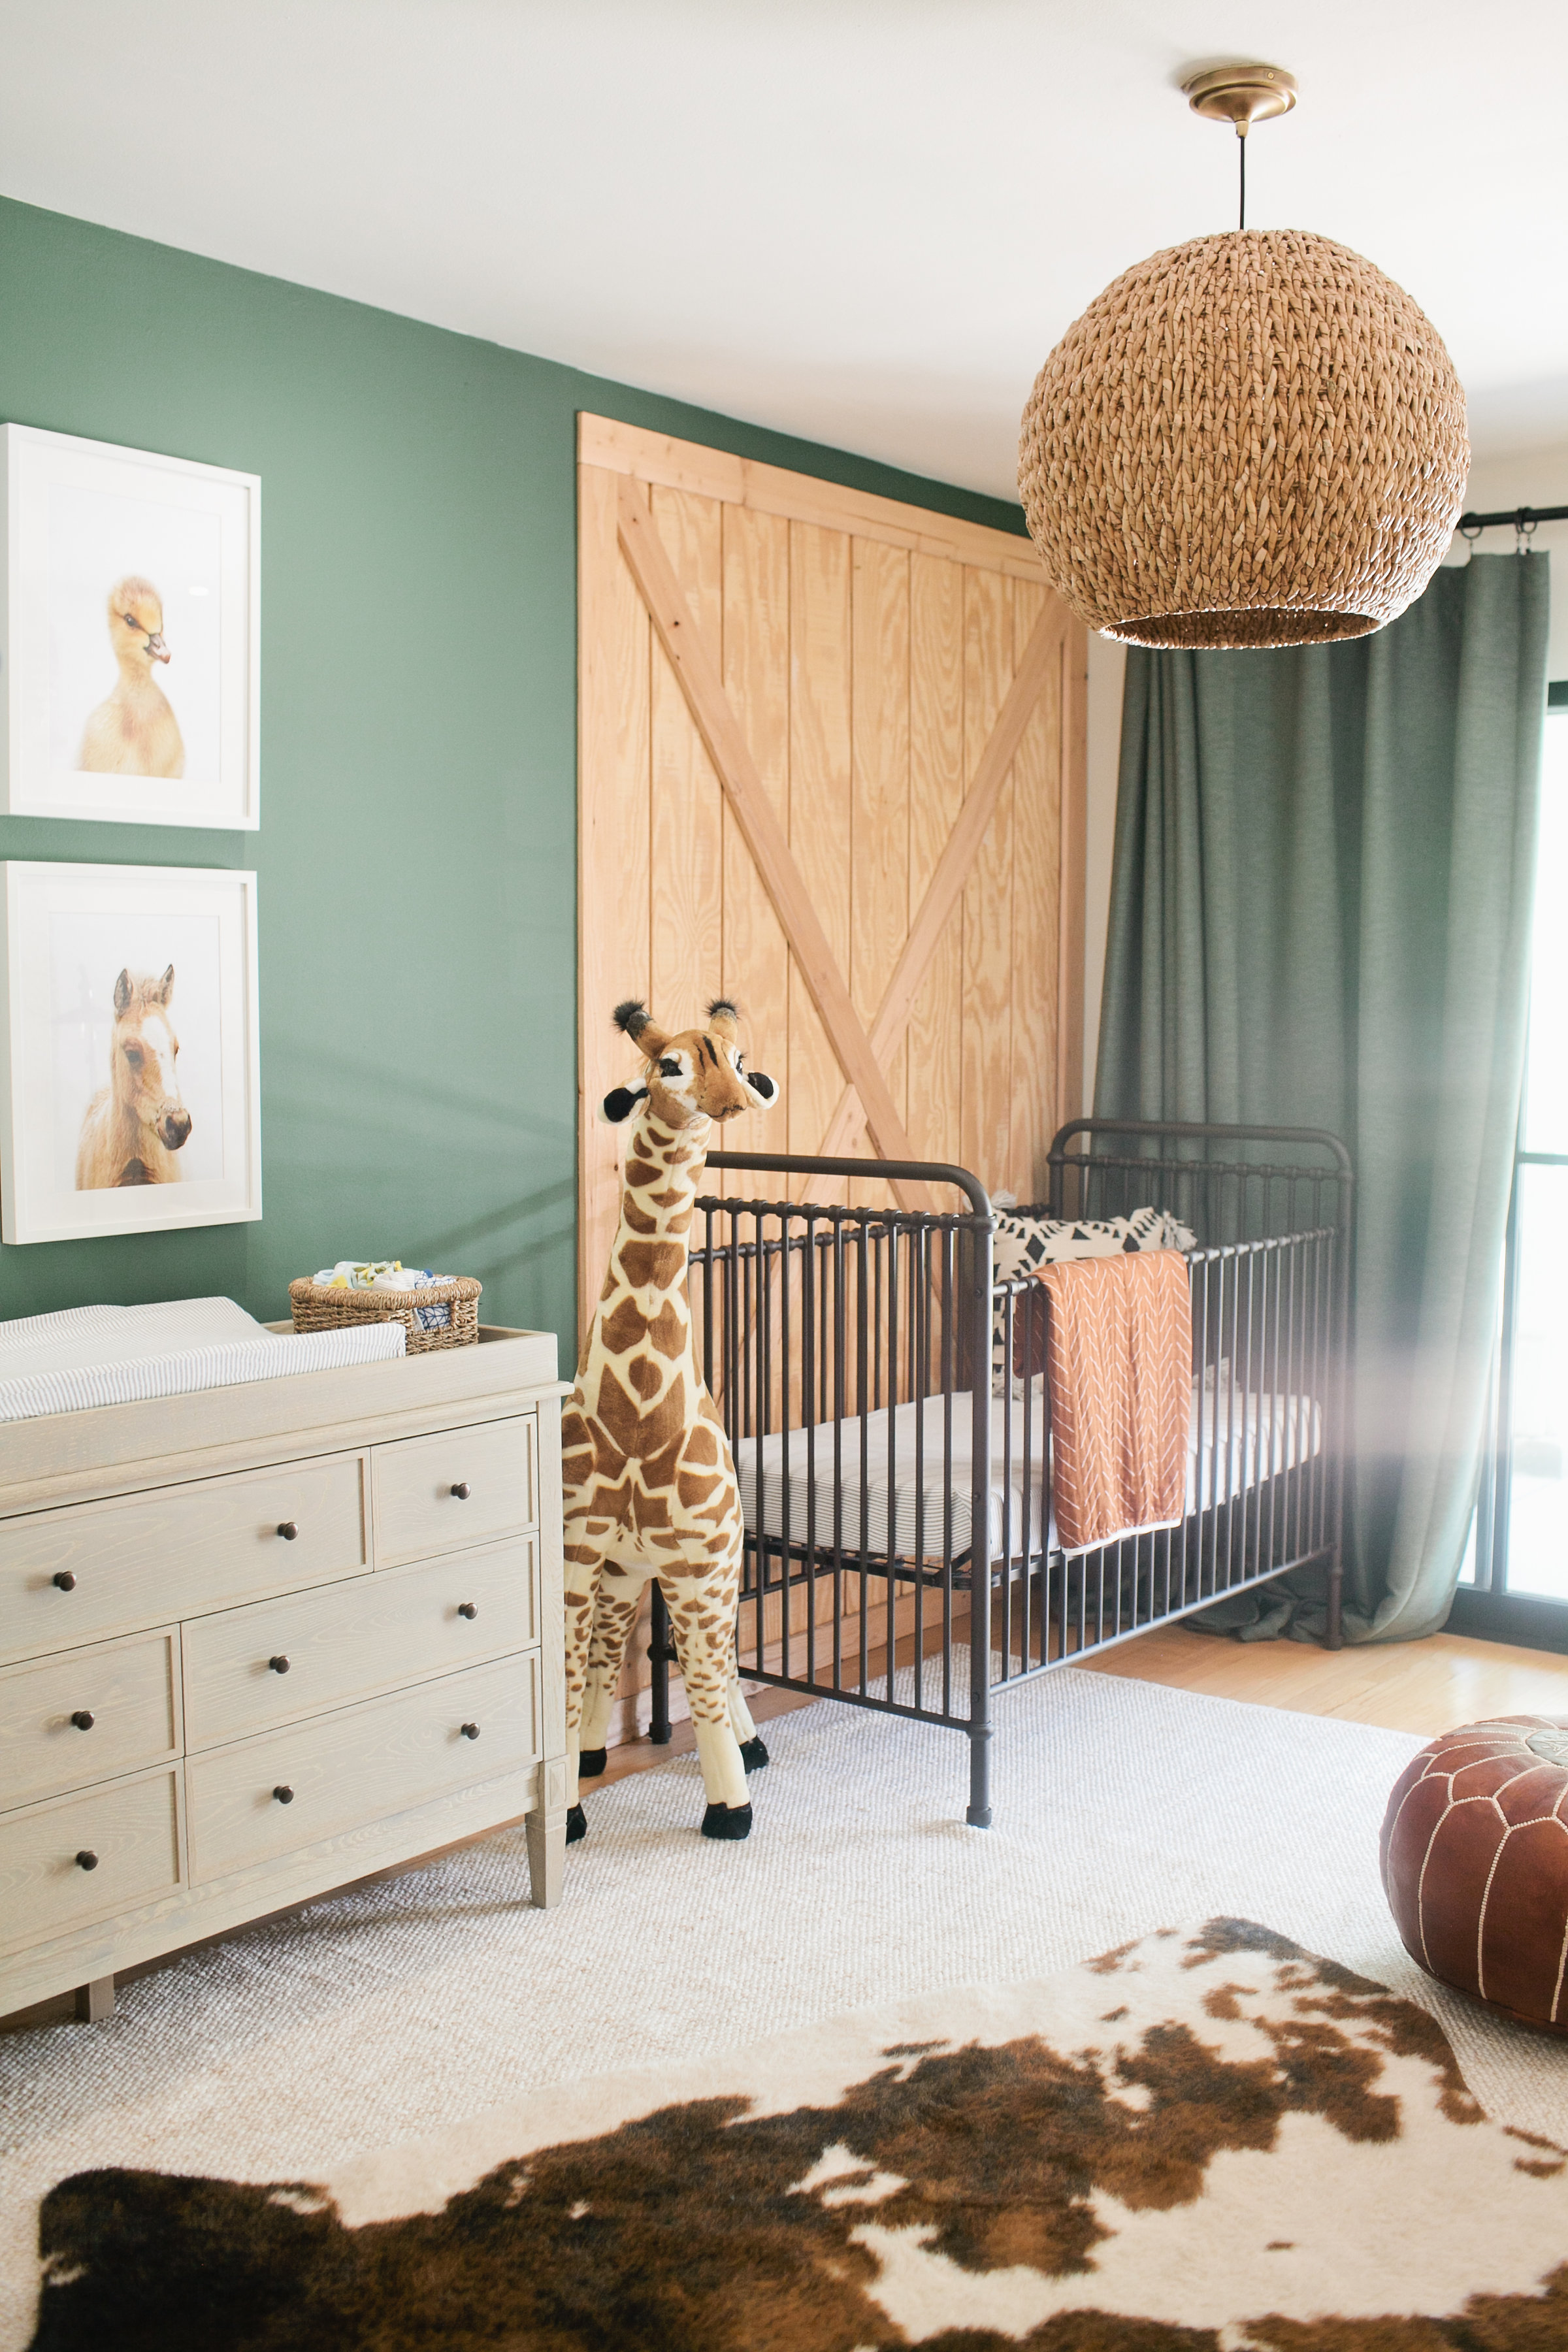 A Chic Nursery That Puts A Boho Twist On The Safari Theme